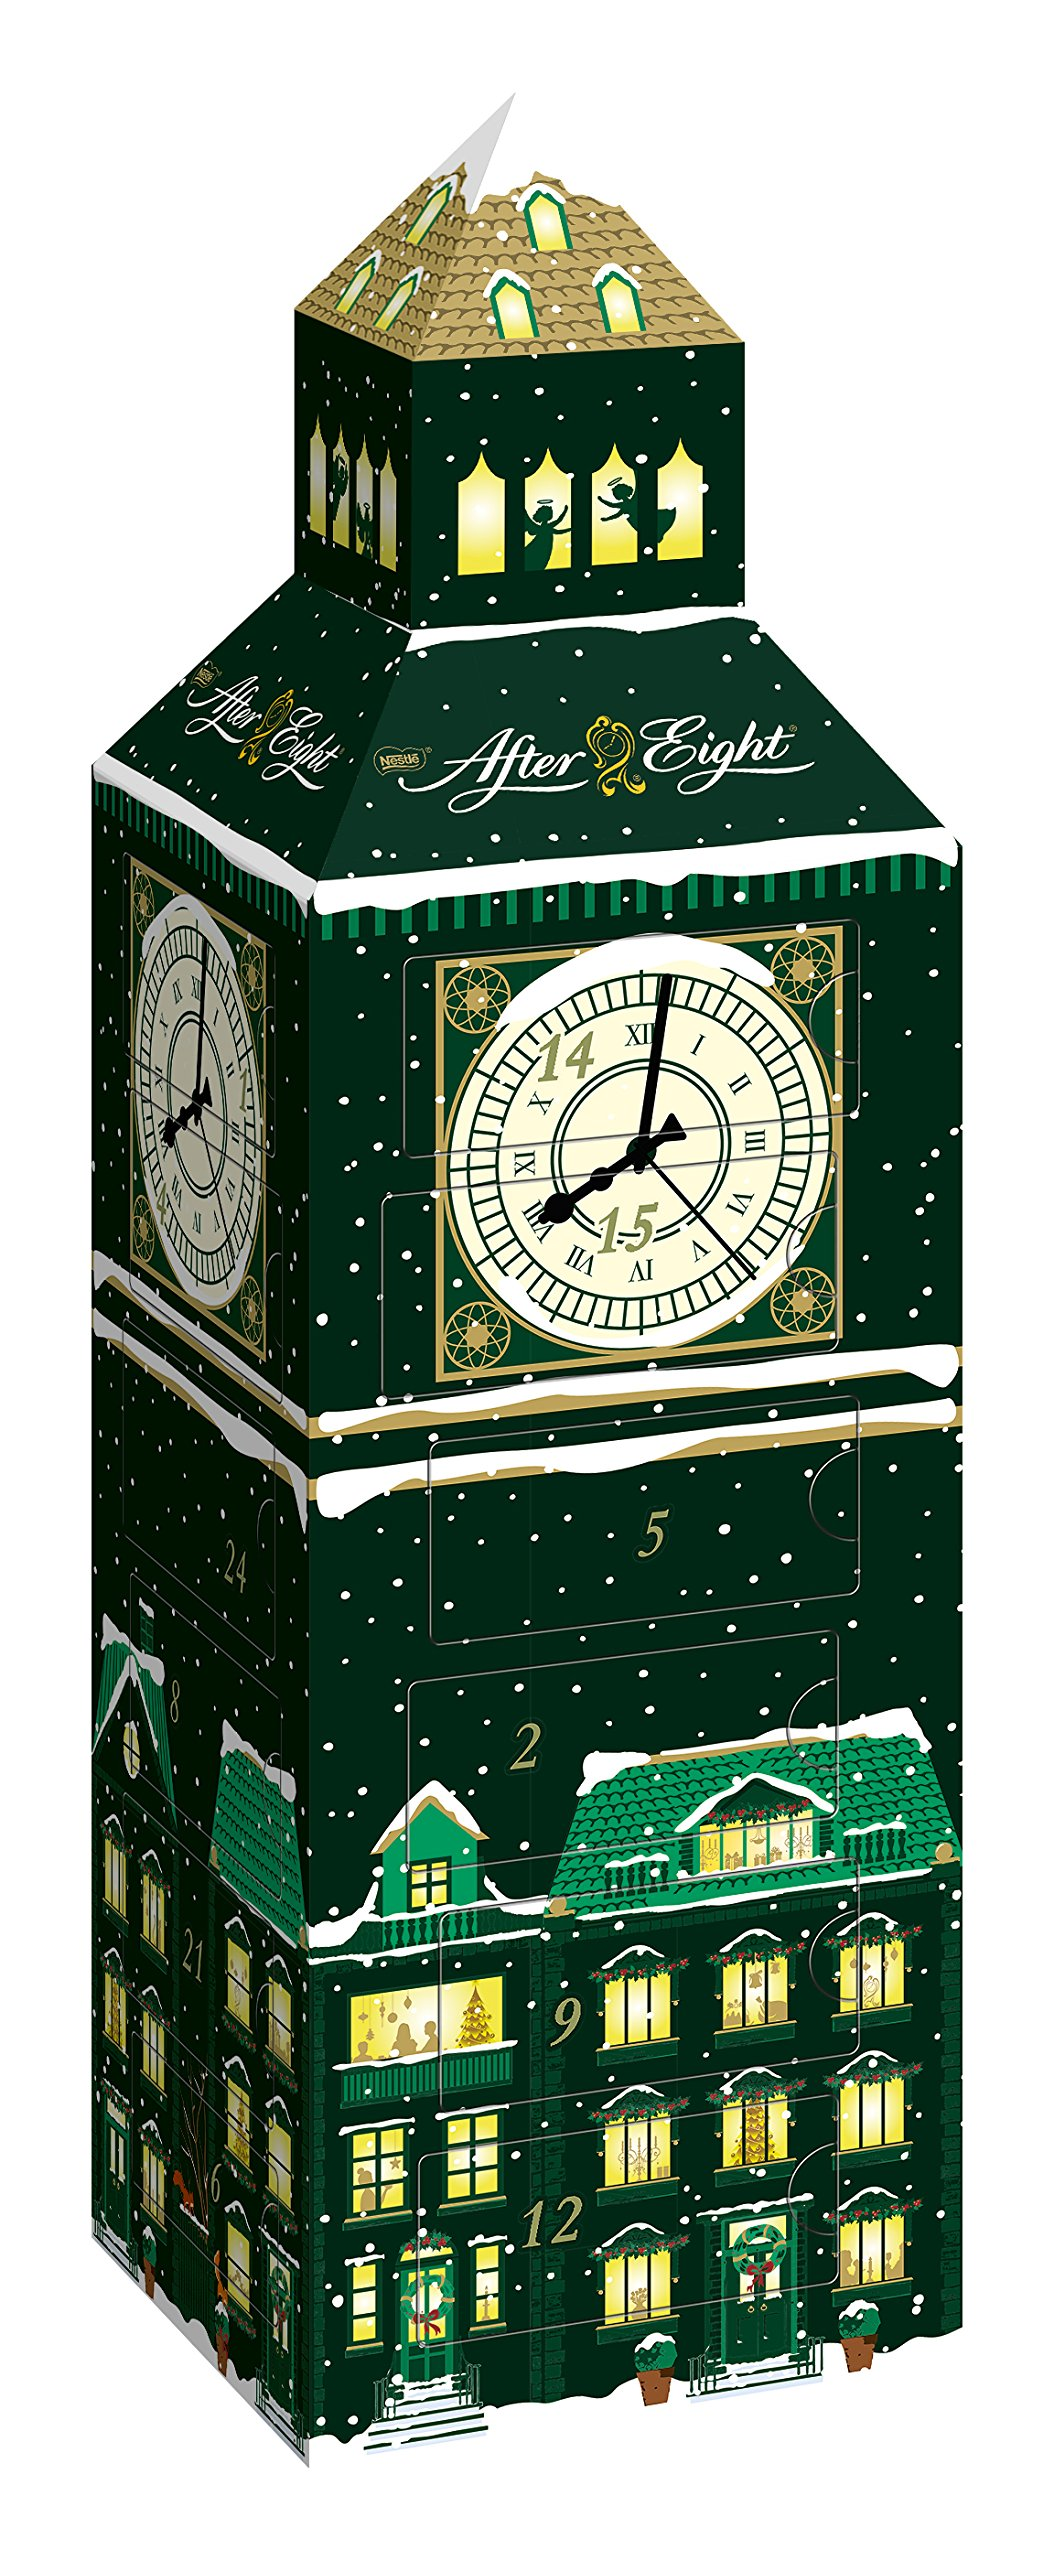 After Eight Adventskalender (advent calendar) Big Ben 185g (6.5oz)